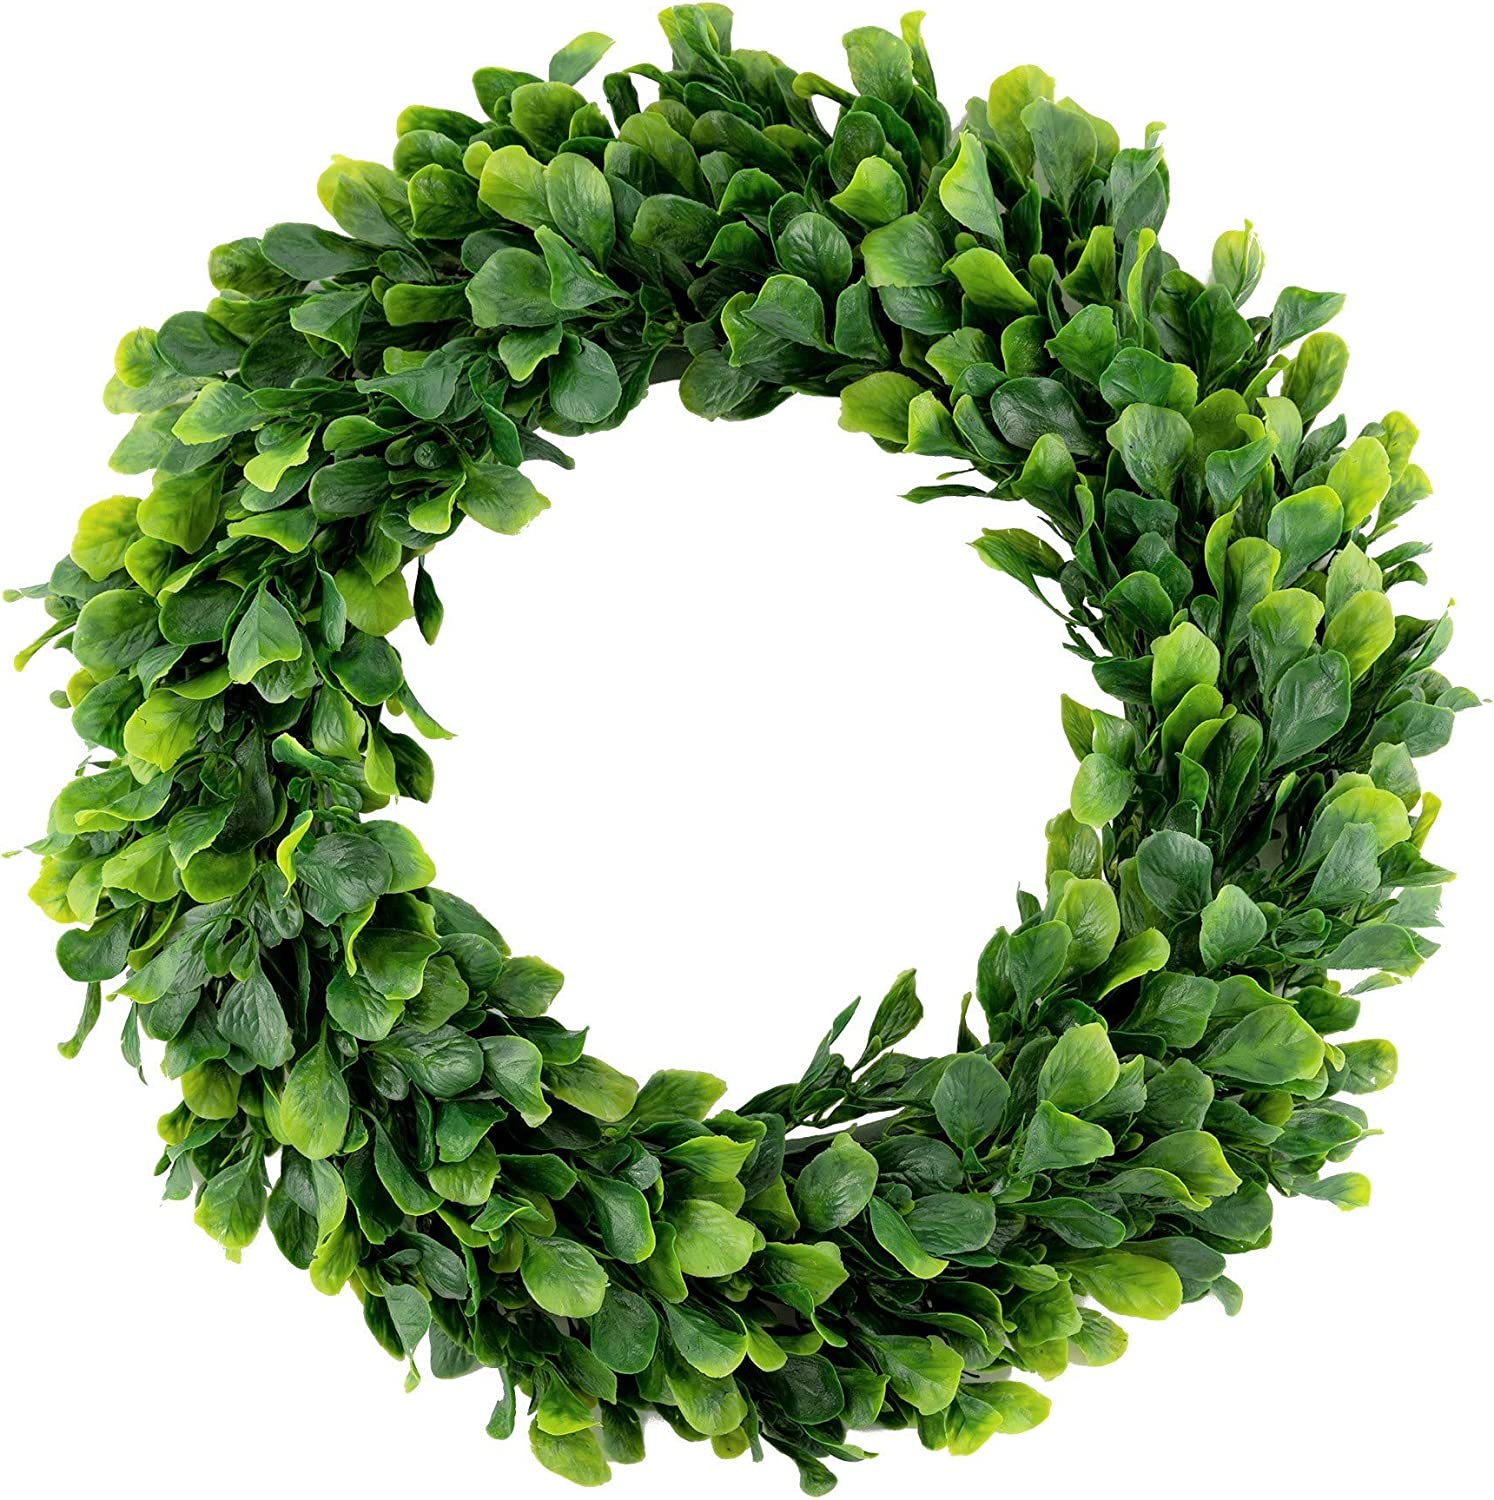 bhappy Boxwood Wreath 15 inch Artificial Greenery Wreath Indoor Front Door Home Hanging Wall Window Wedding Party Decor